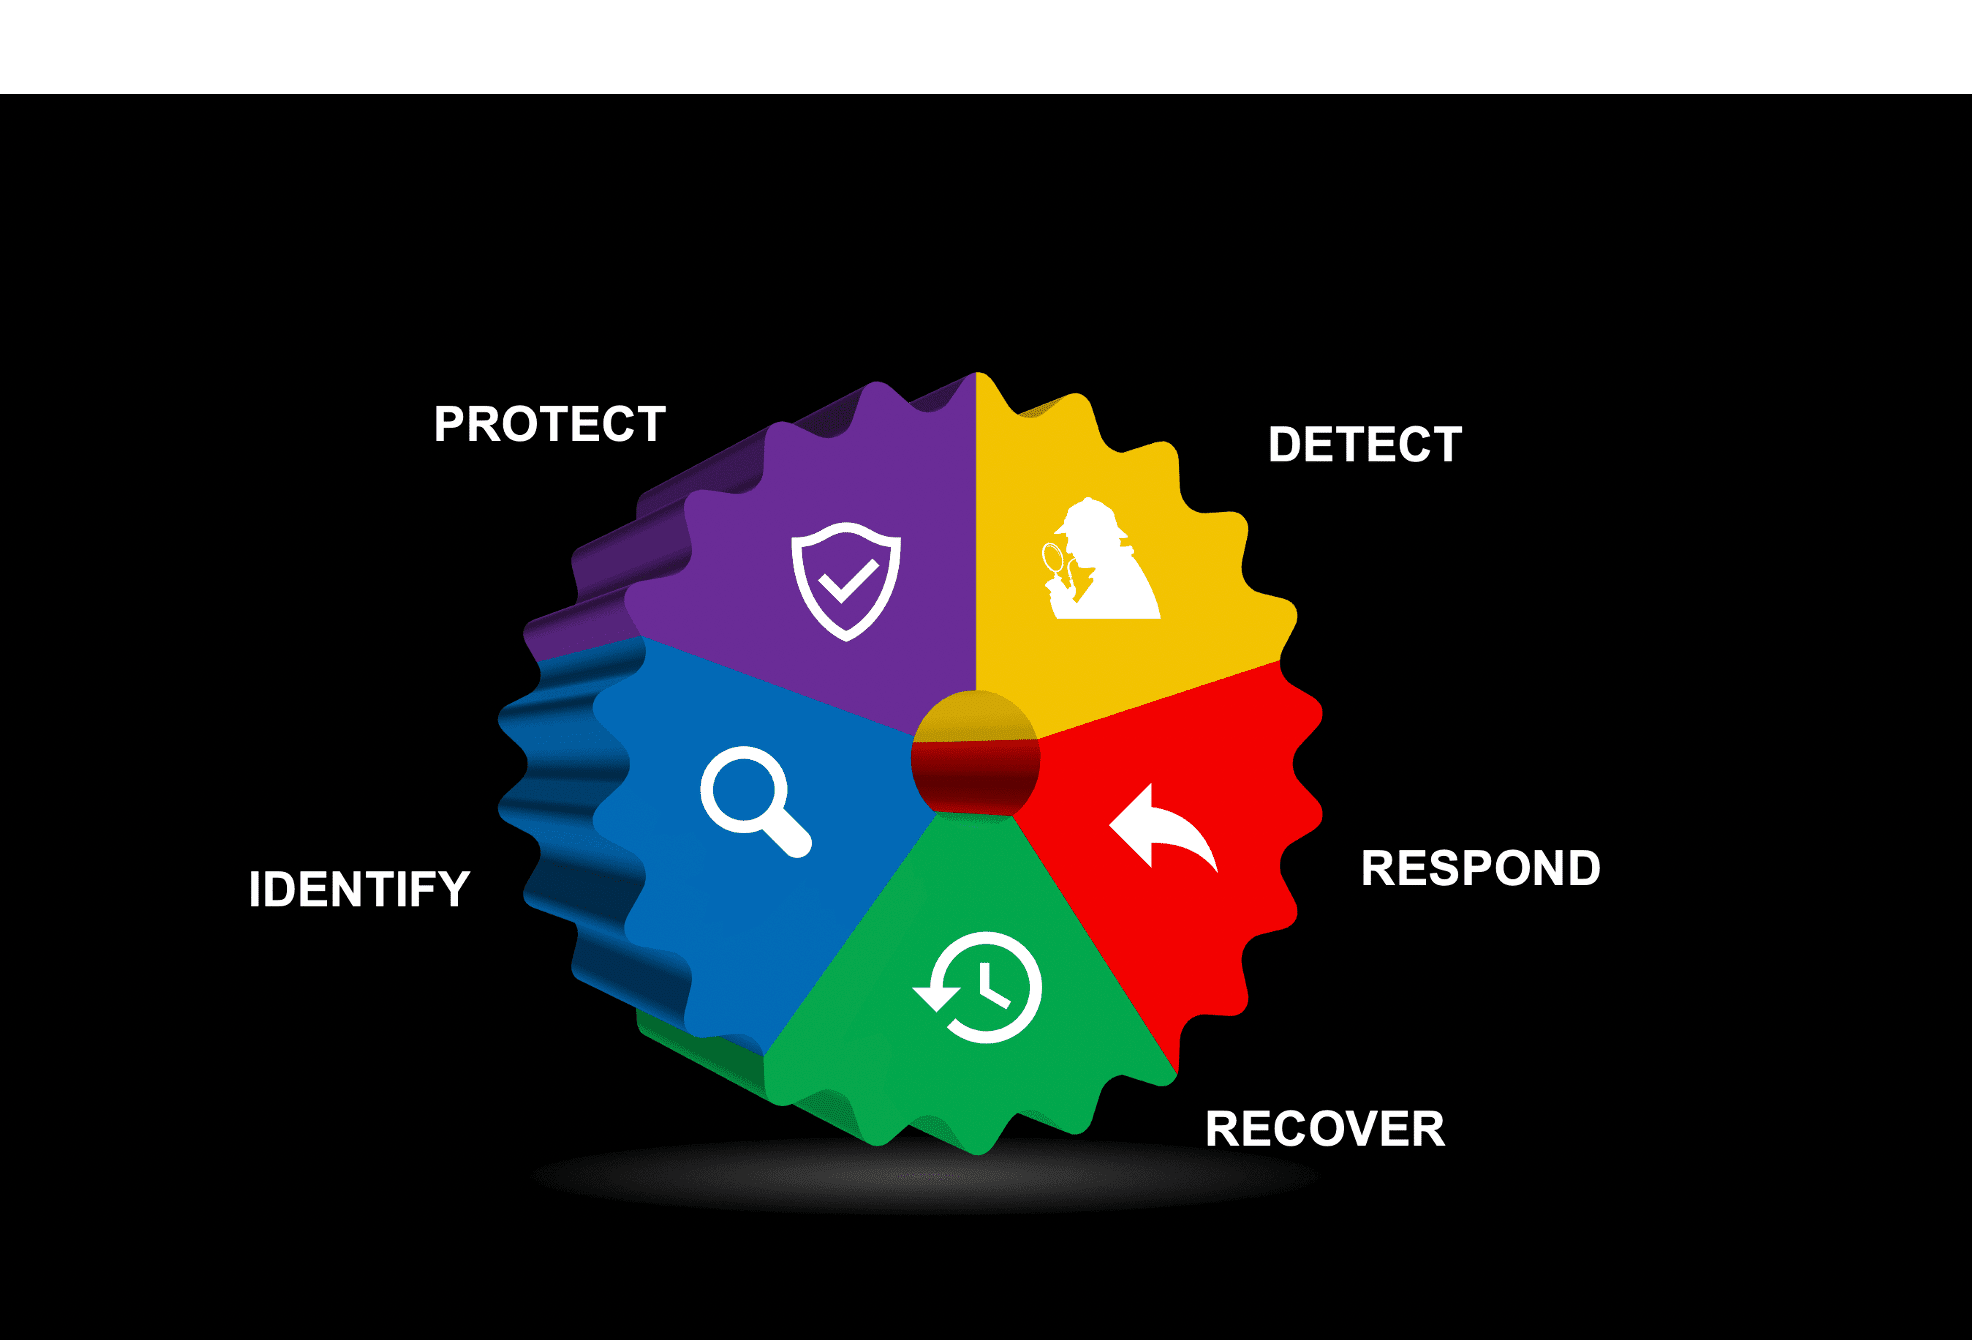 #6 - How to Operationalize the NIST Cybersecurity Framework